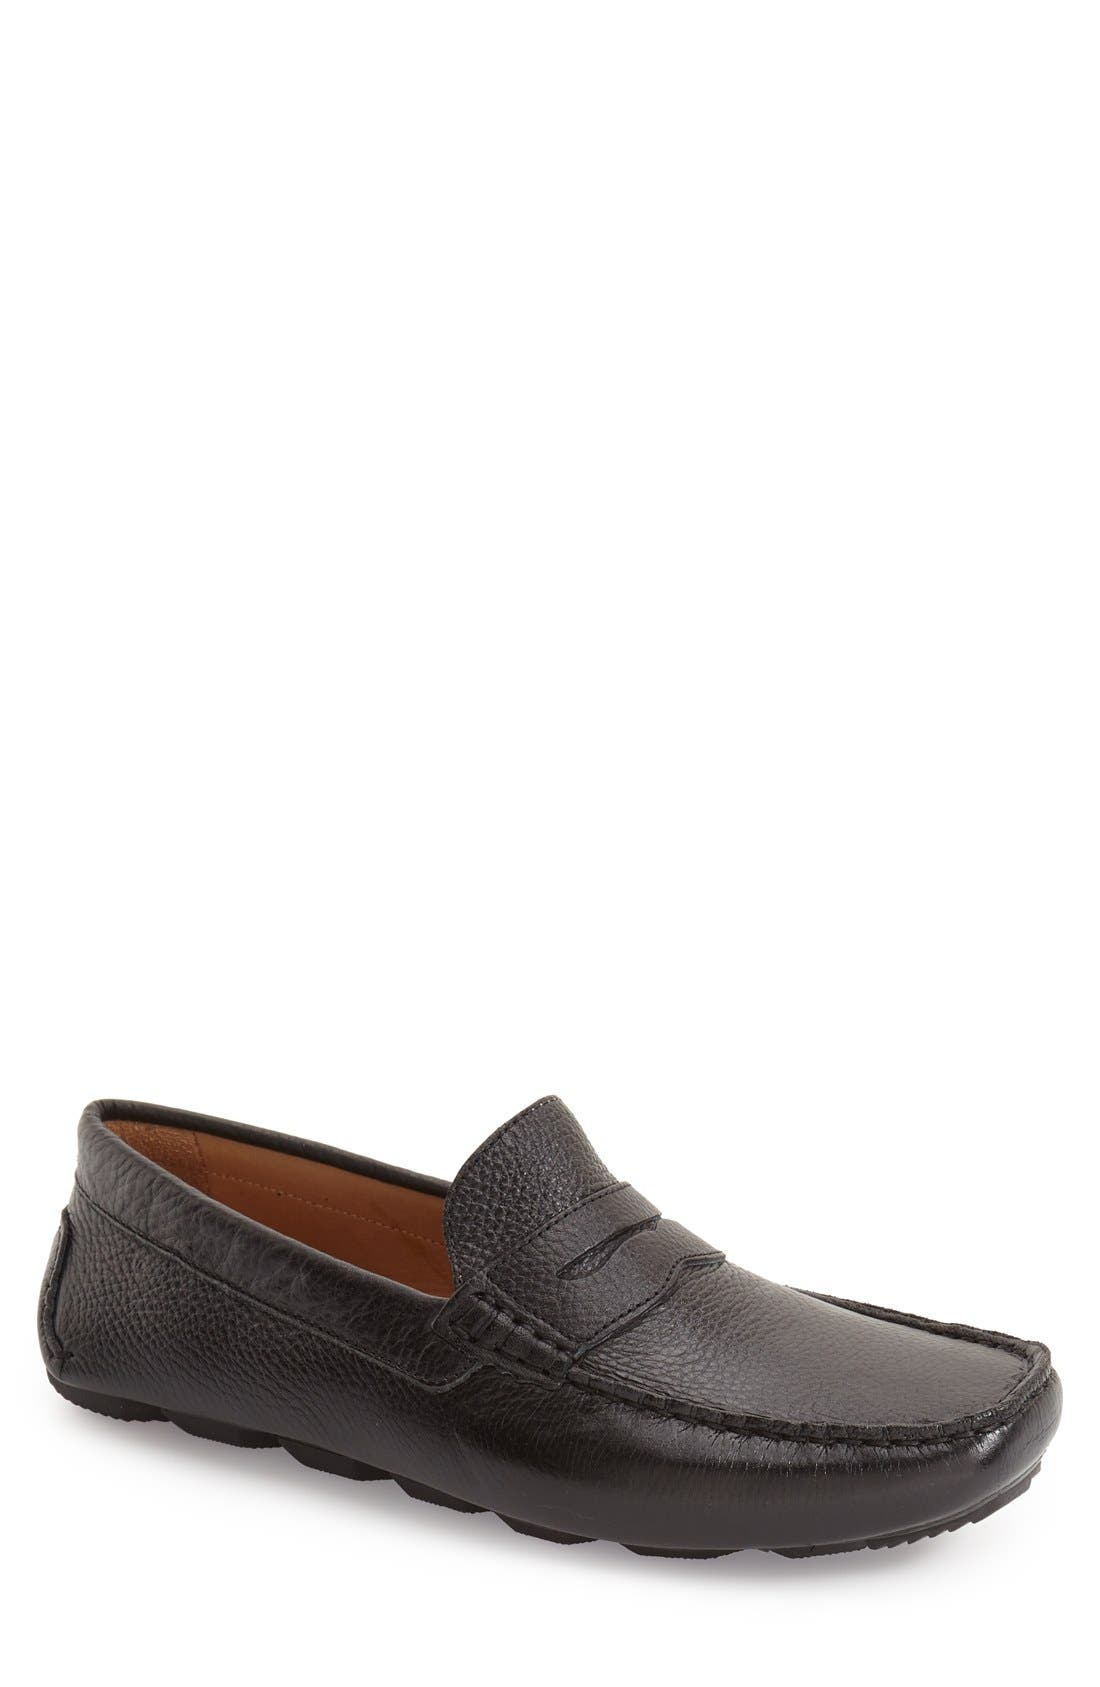 Driver Loafer Shoes for Men On Sale, Chocolate Mousse, Suede leather, 2017, 6 7 7.5 Tod's